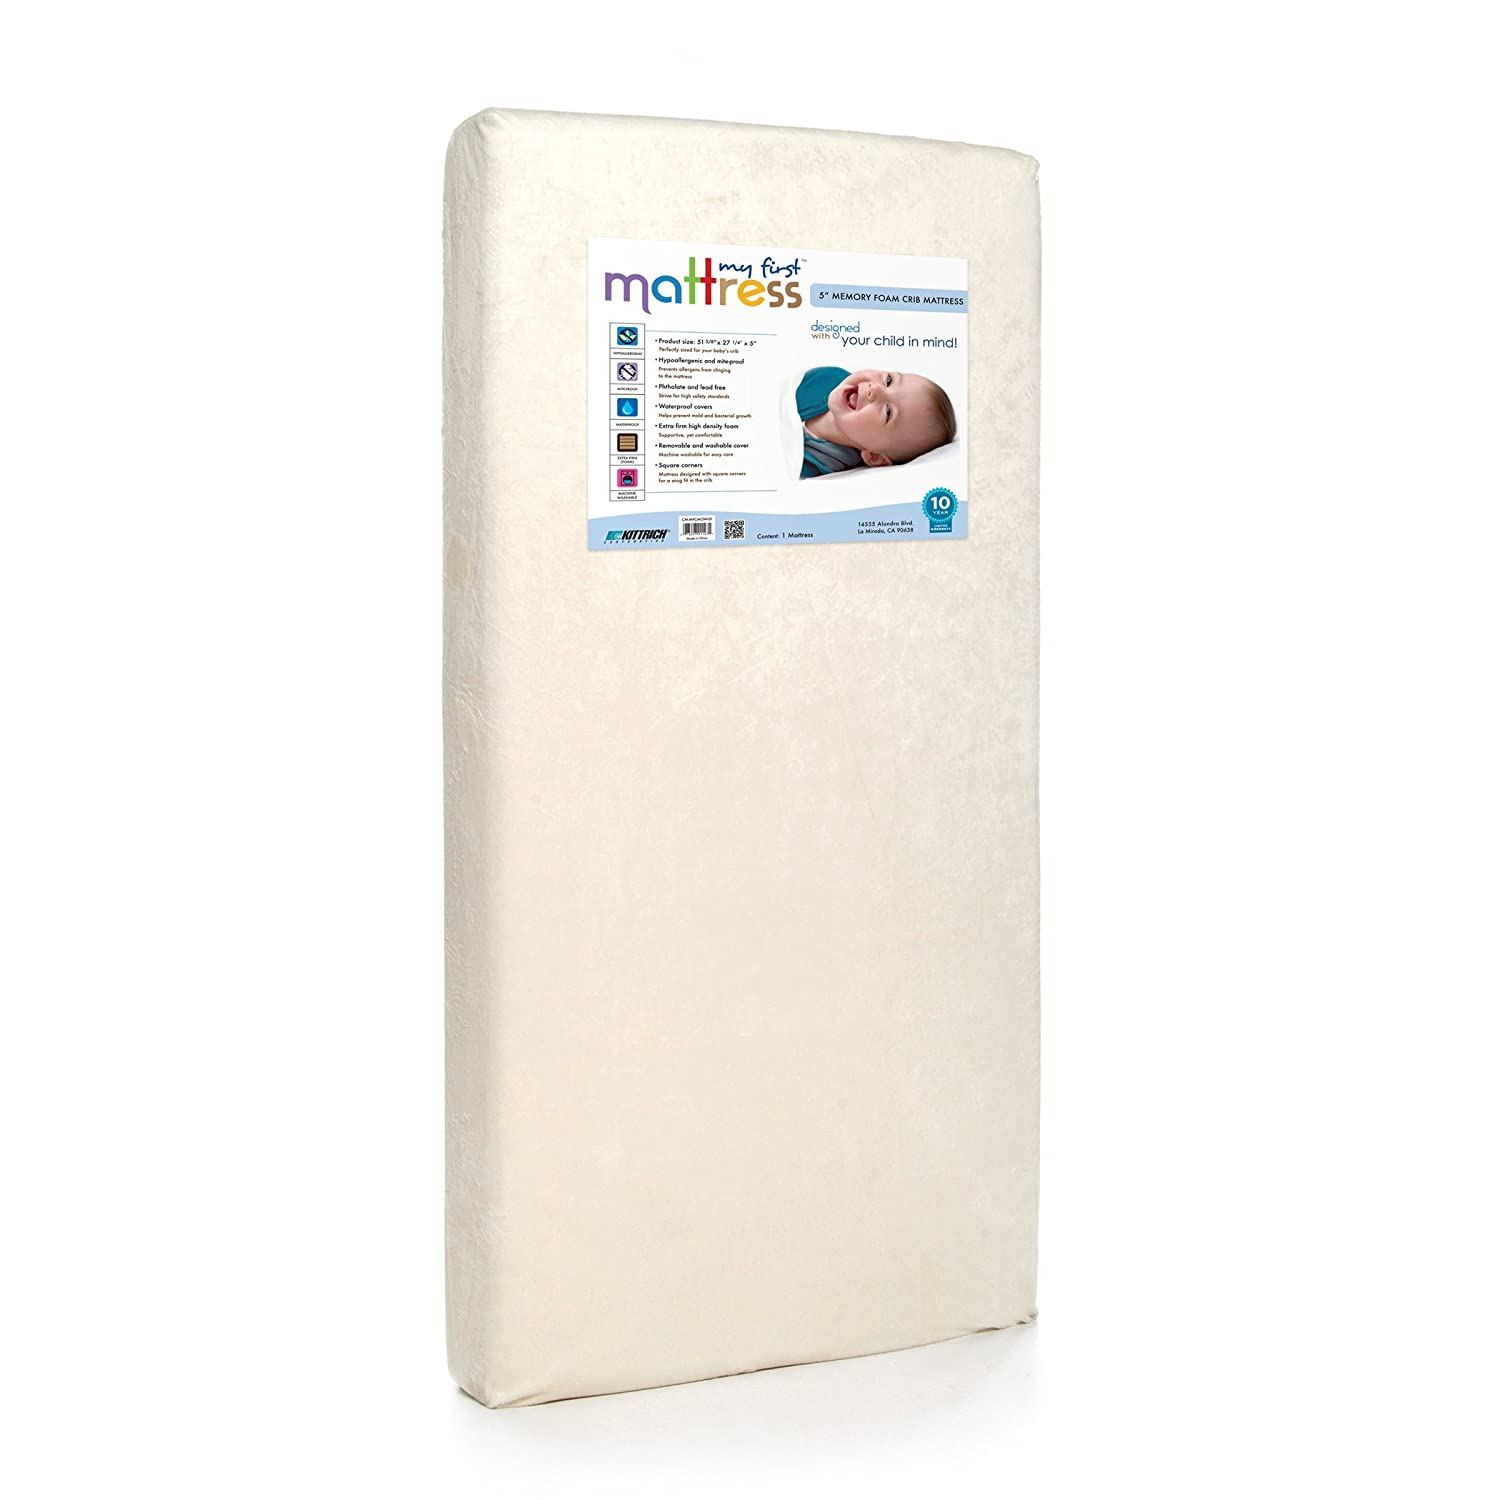 My First Mattress Premium Memory Foam Infant Crib Mattress with  Removable Waterproof Cover